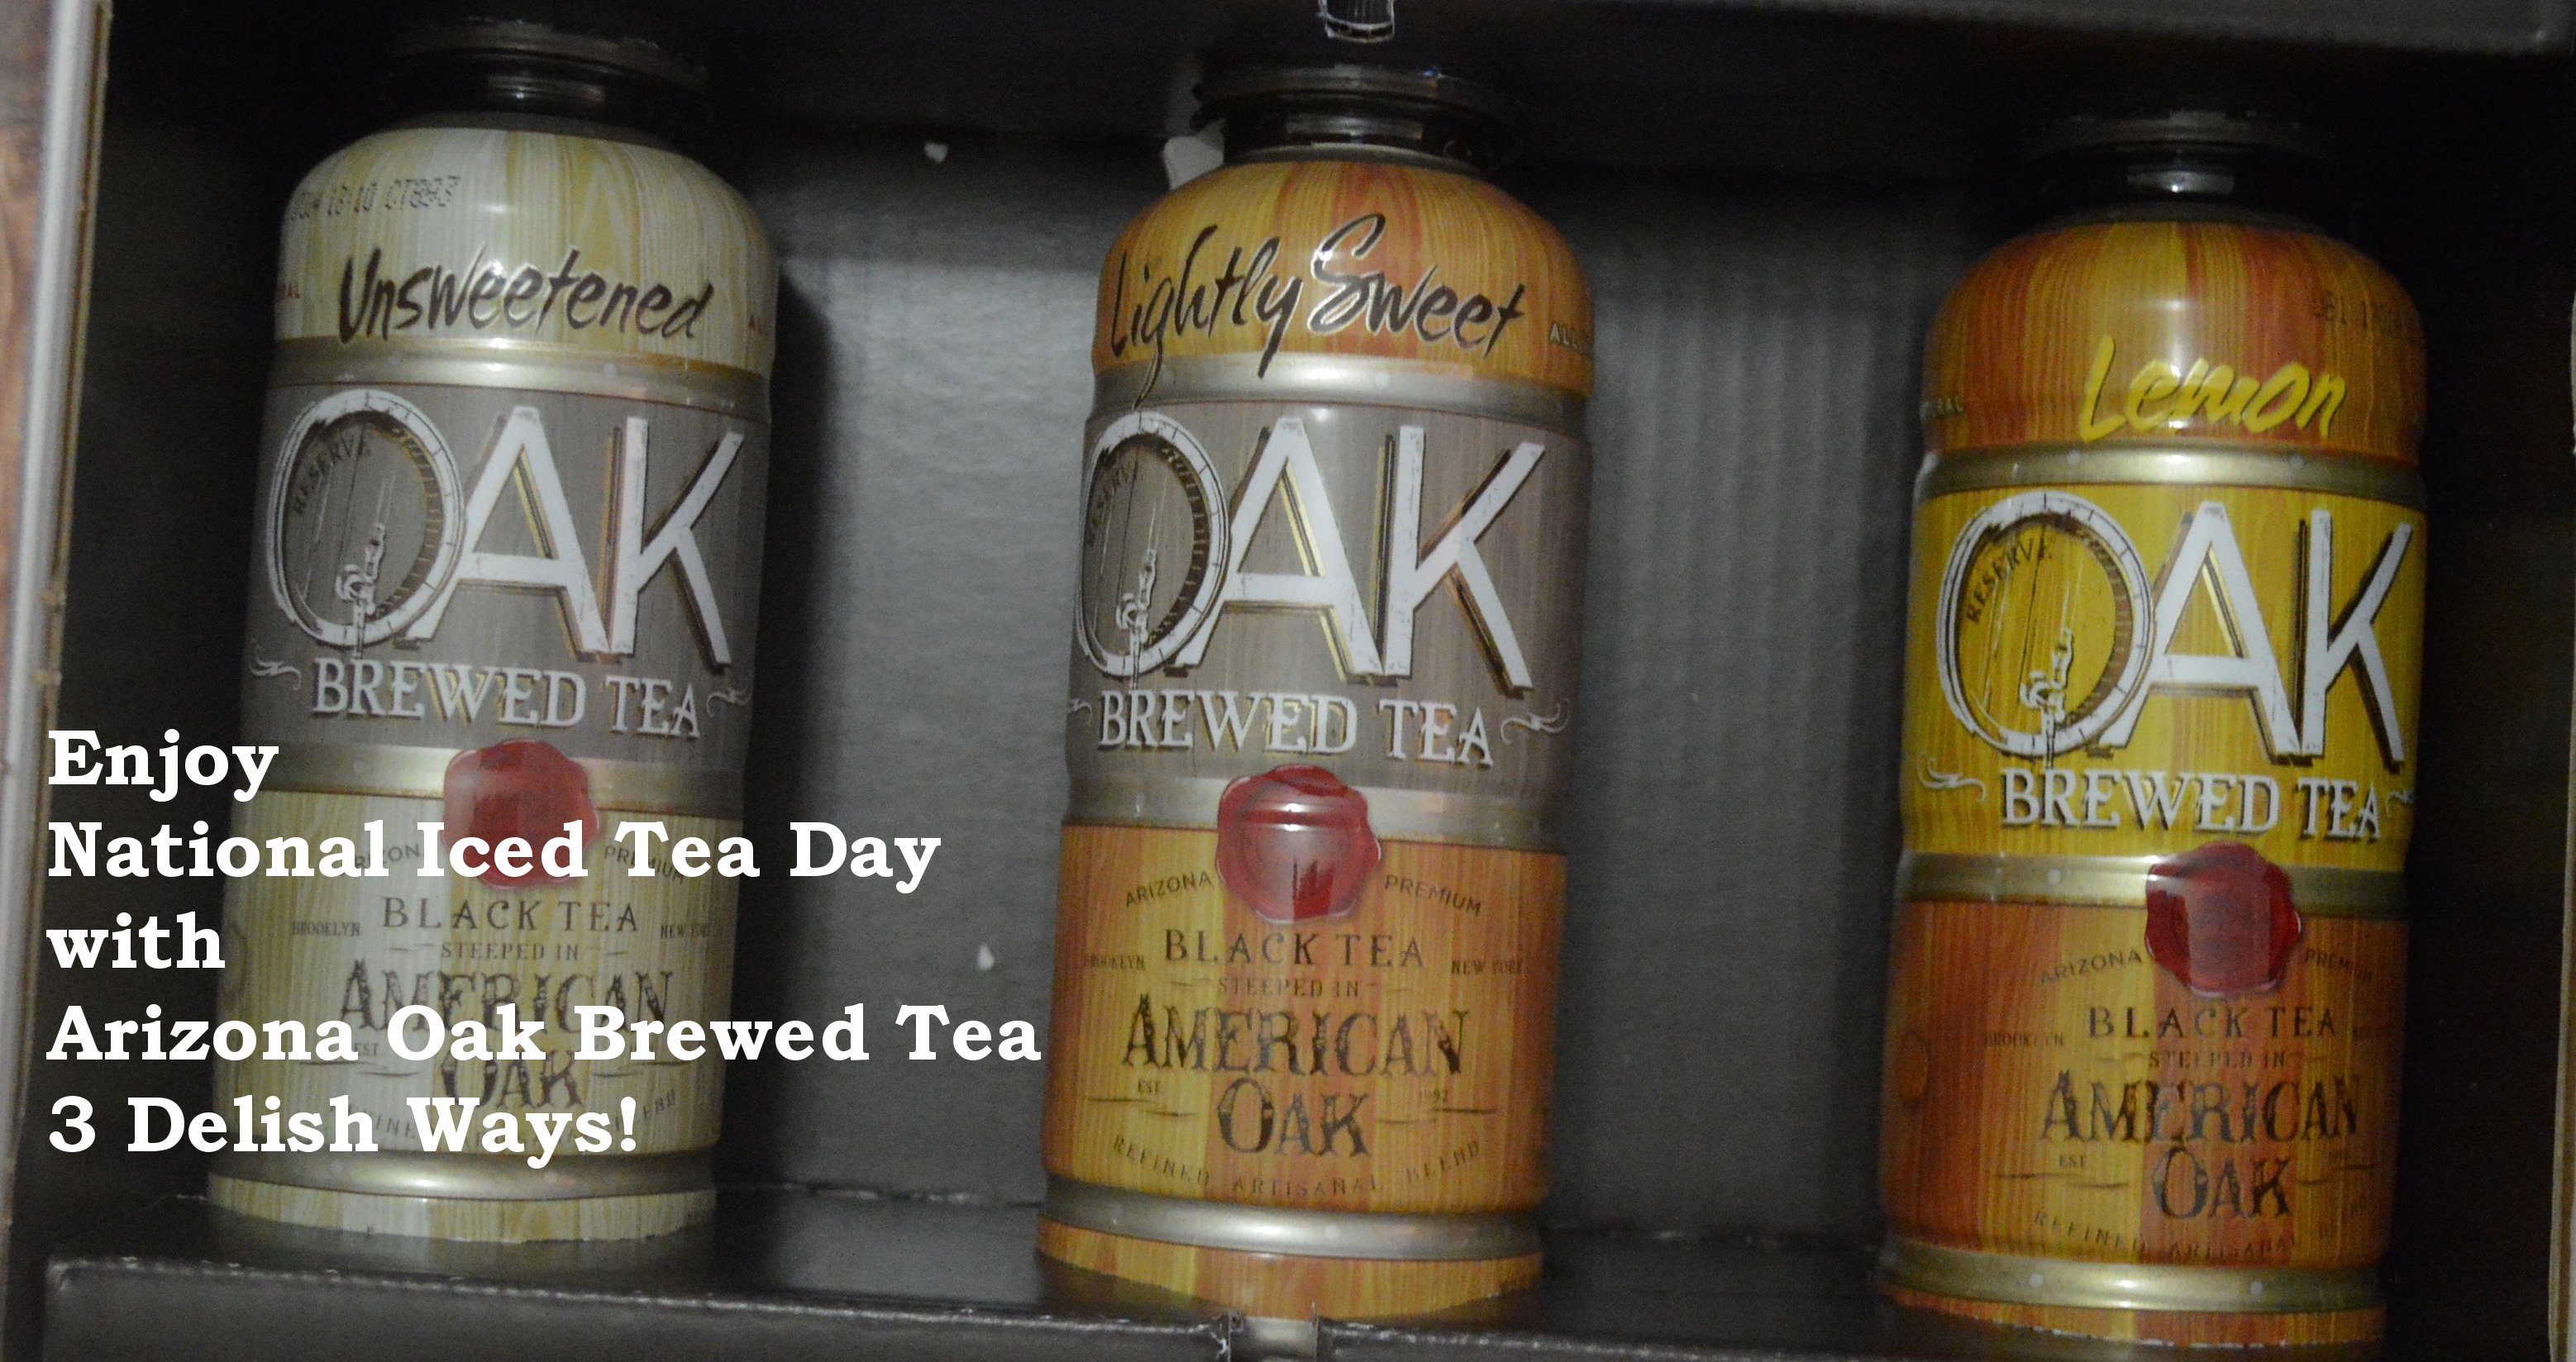 arizona beverages, arizona iced tea, national iced tea day, tea, tea recipes, oak tea, black tea, arizona oak reserve tea, drink arizona